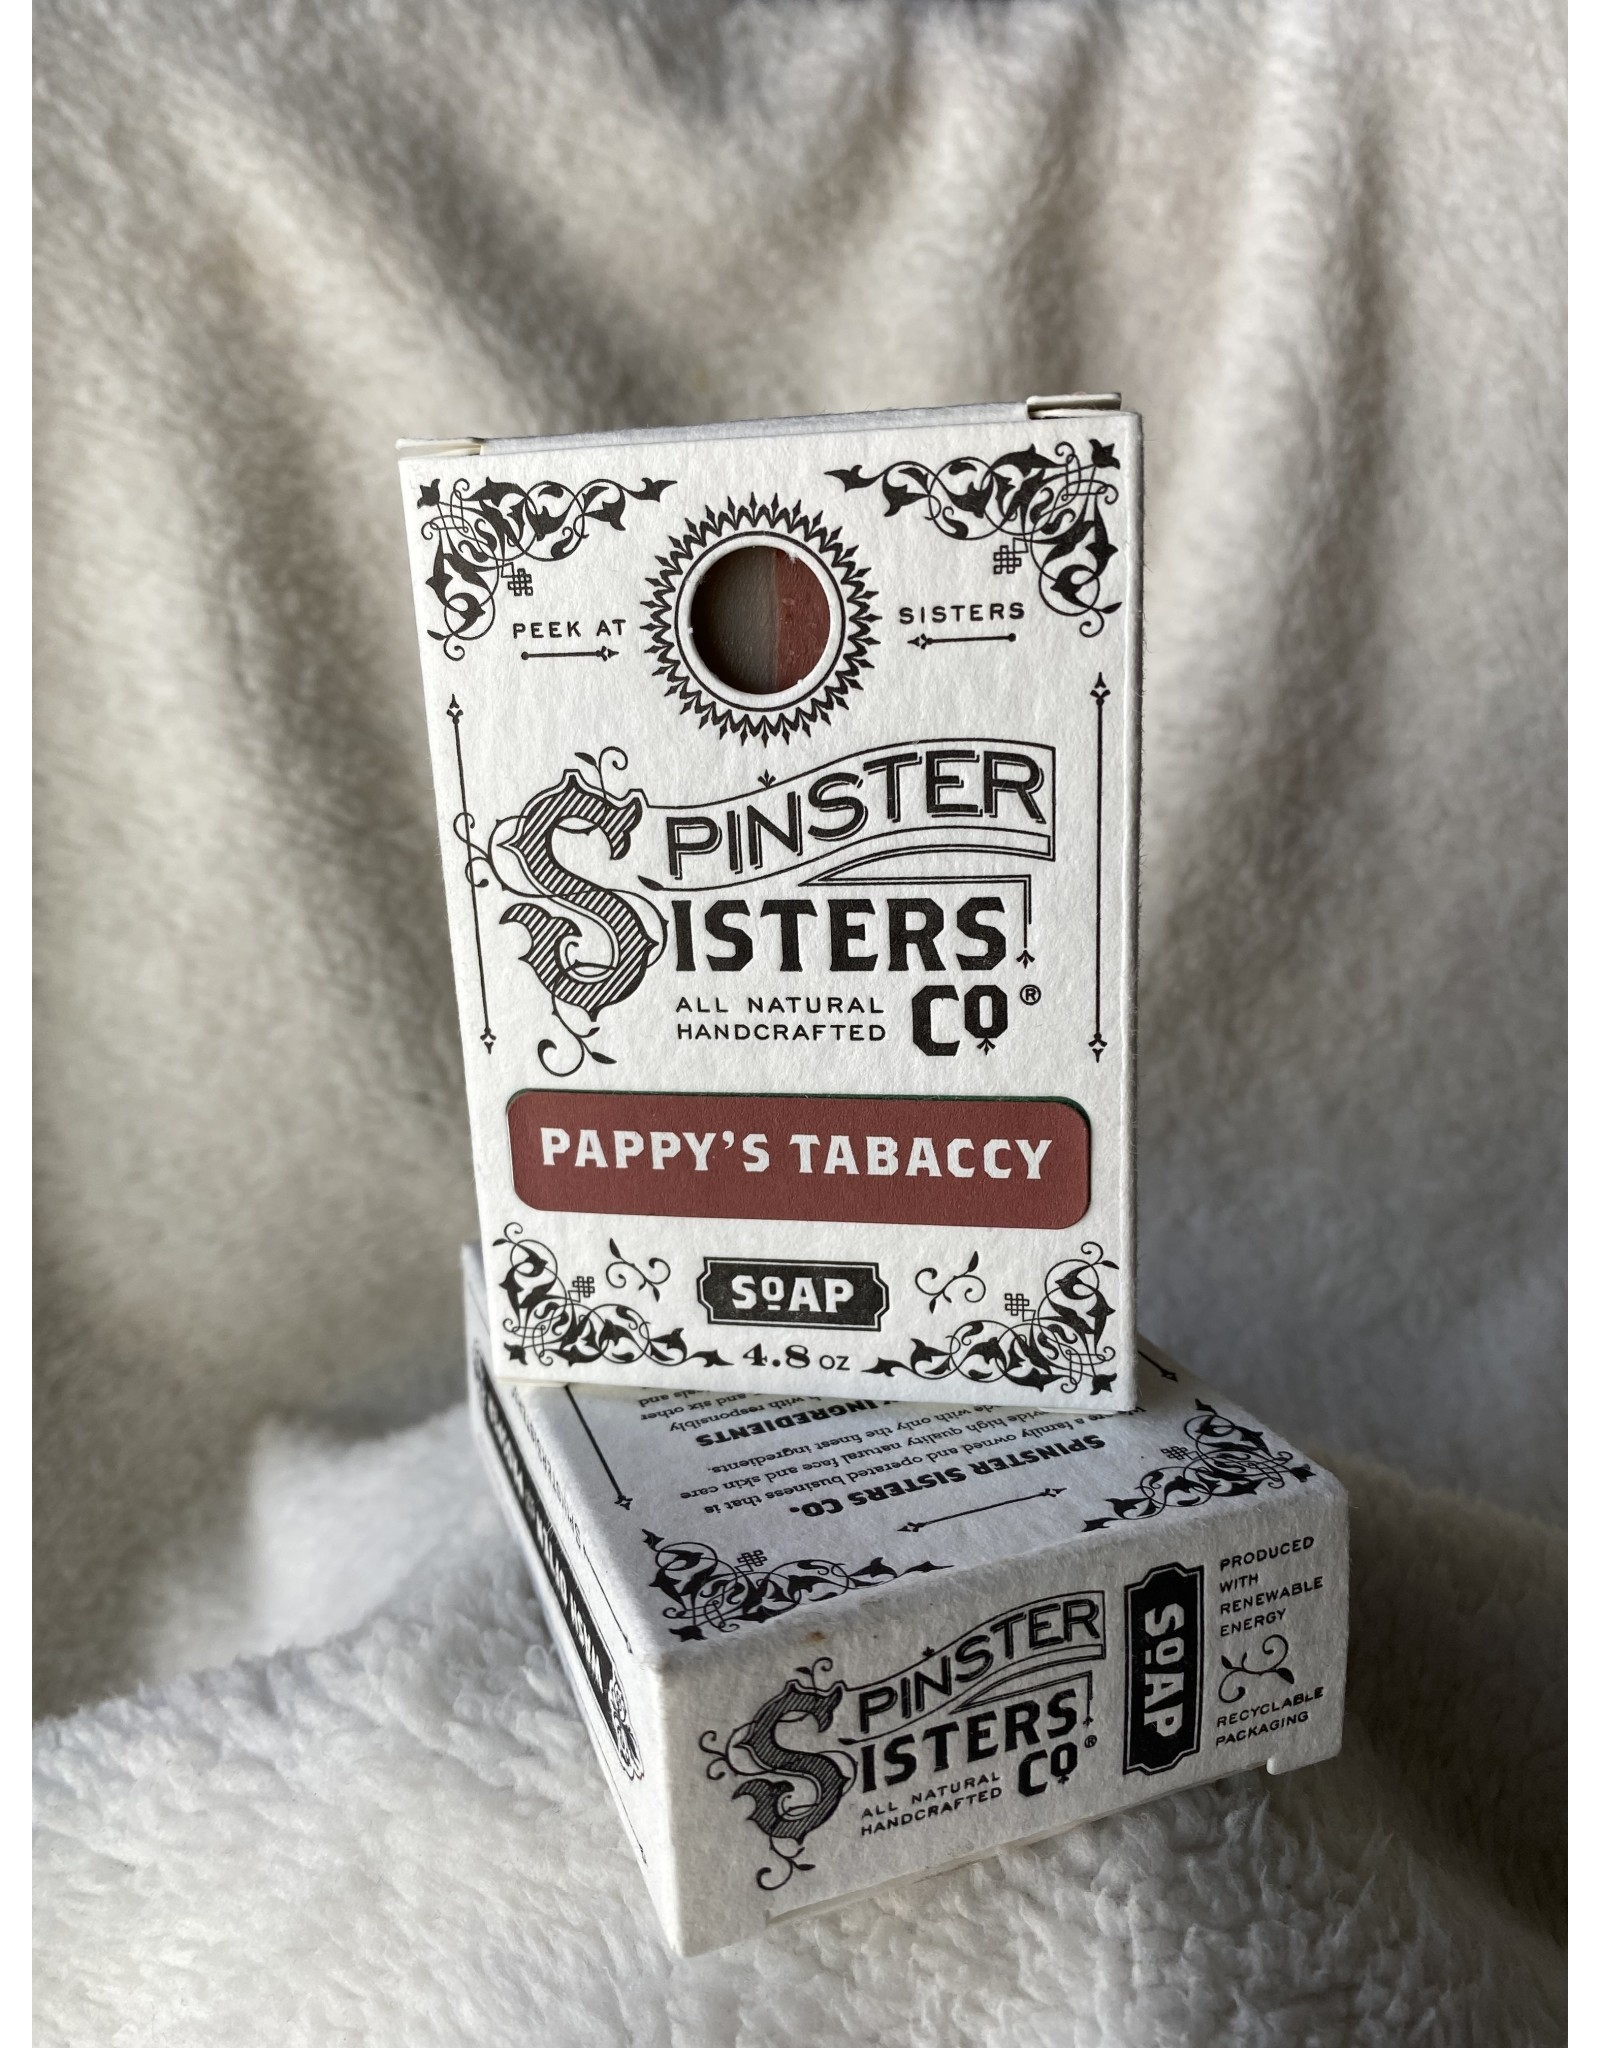 Spinster Sisters Co. 4.8 oz. Soap Bar   Pappy's Tabaccy